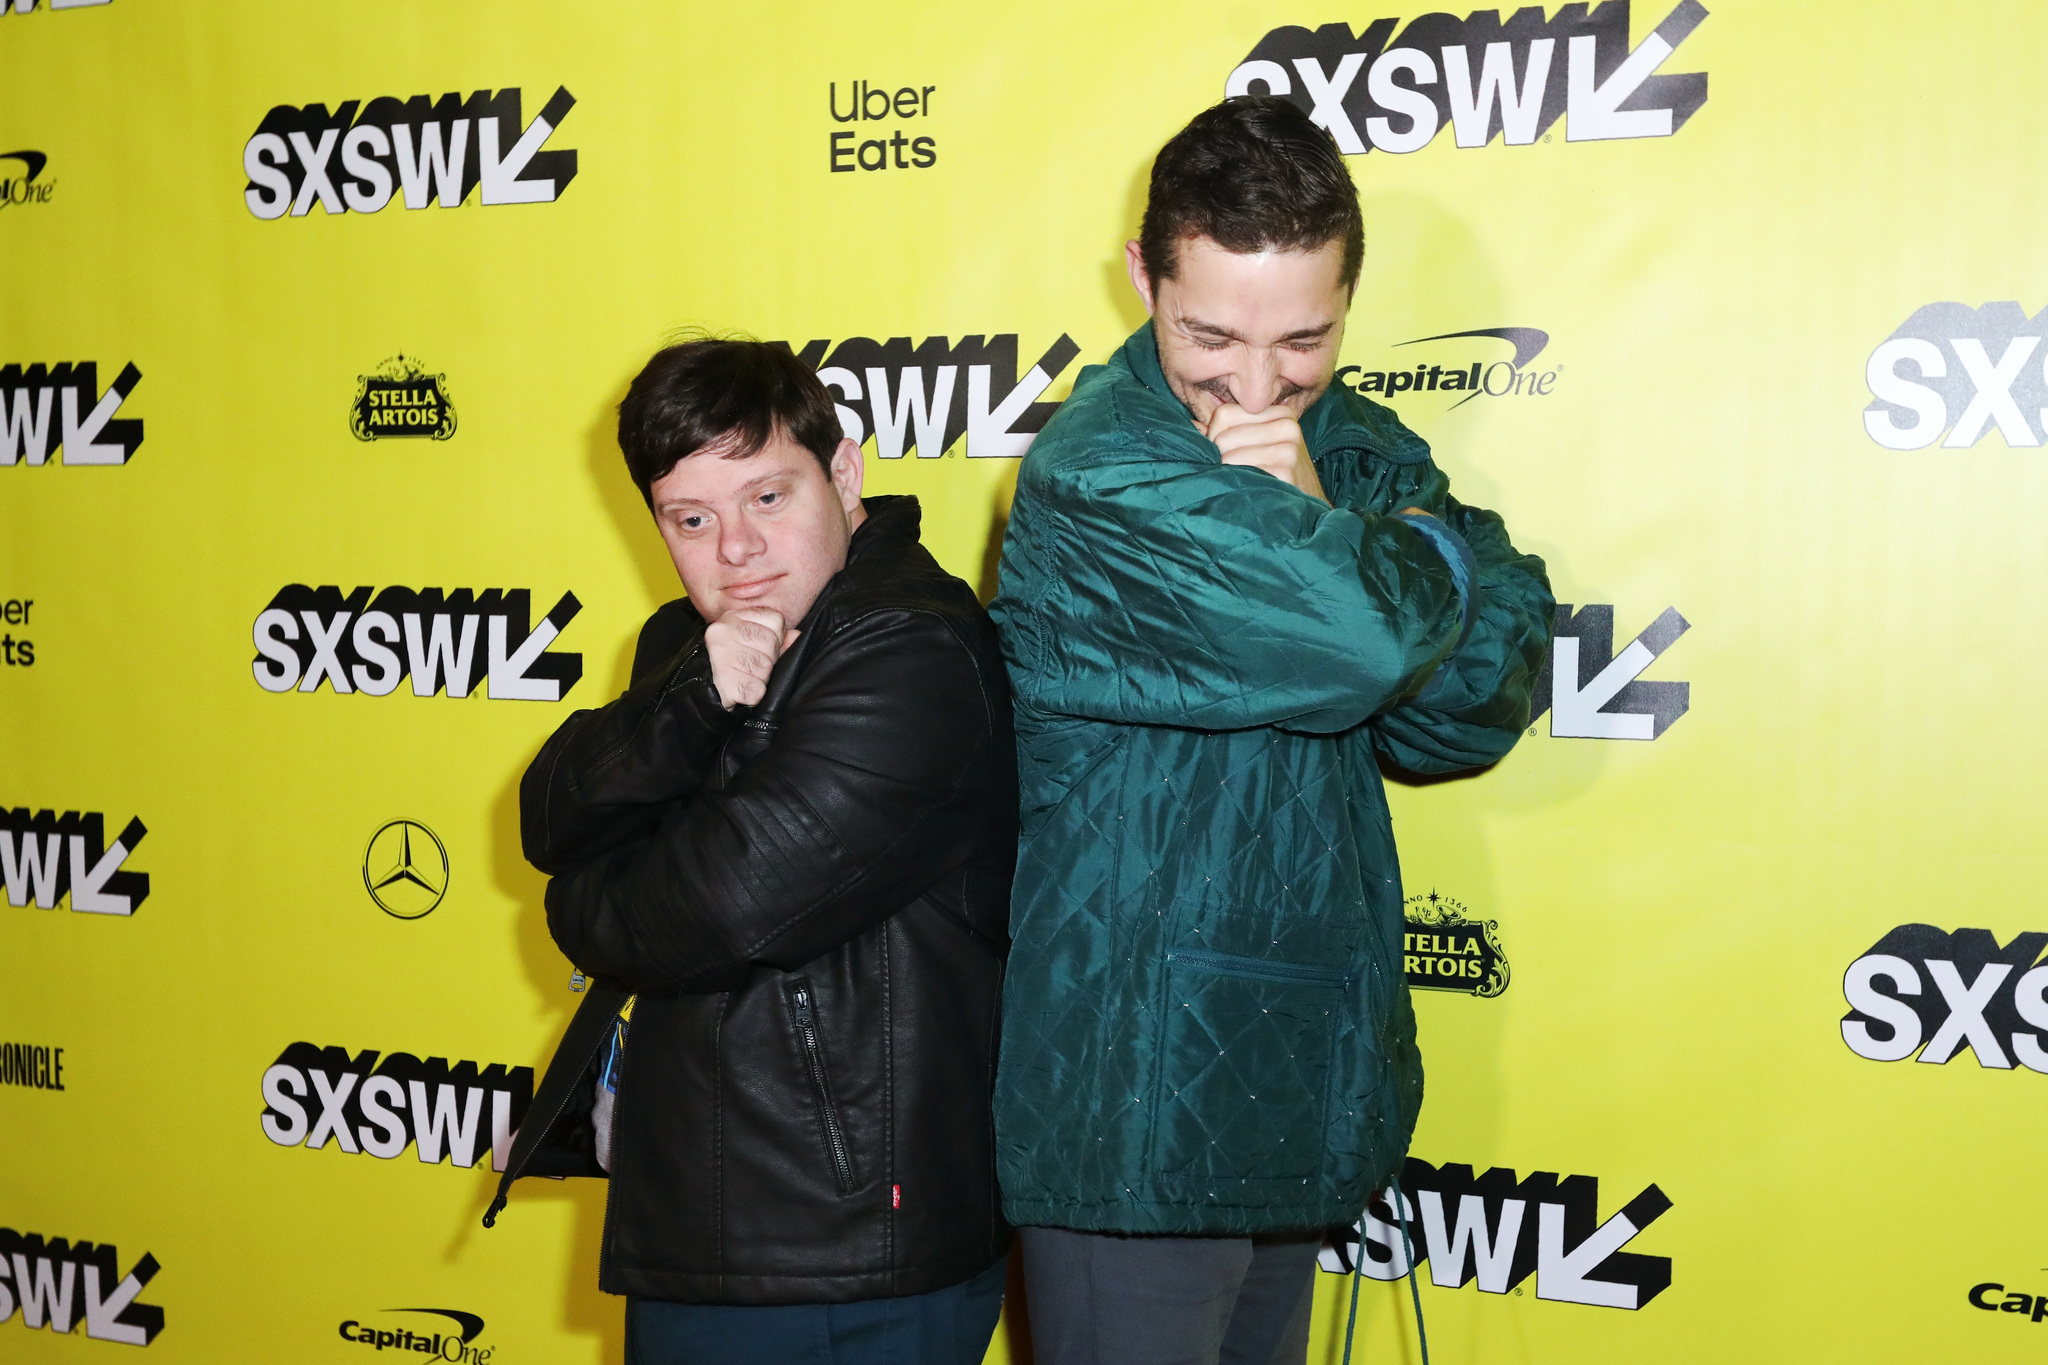 Shia LaBeouf and Zack Gottsagen at an event for The Peanut Butter Falcon (2019)